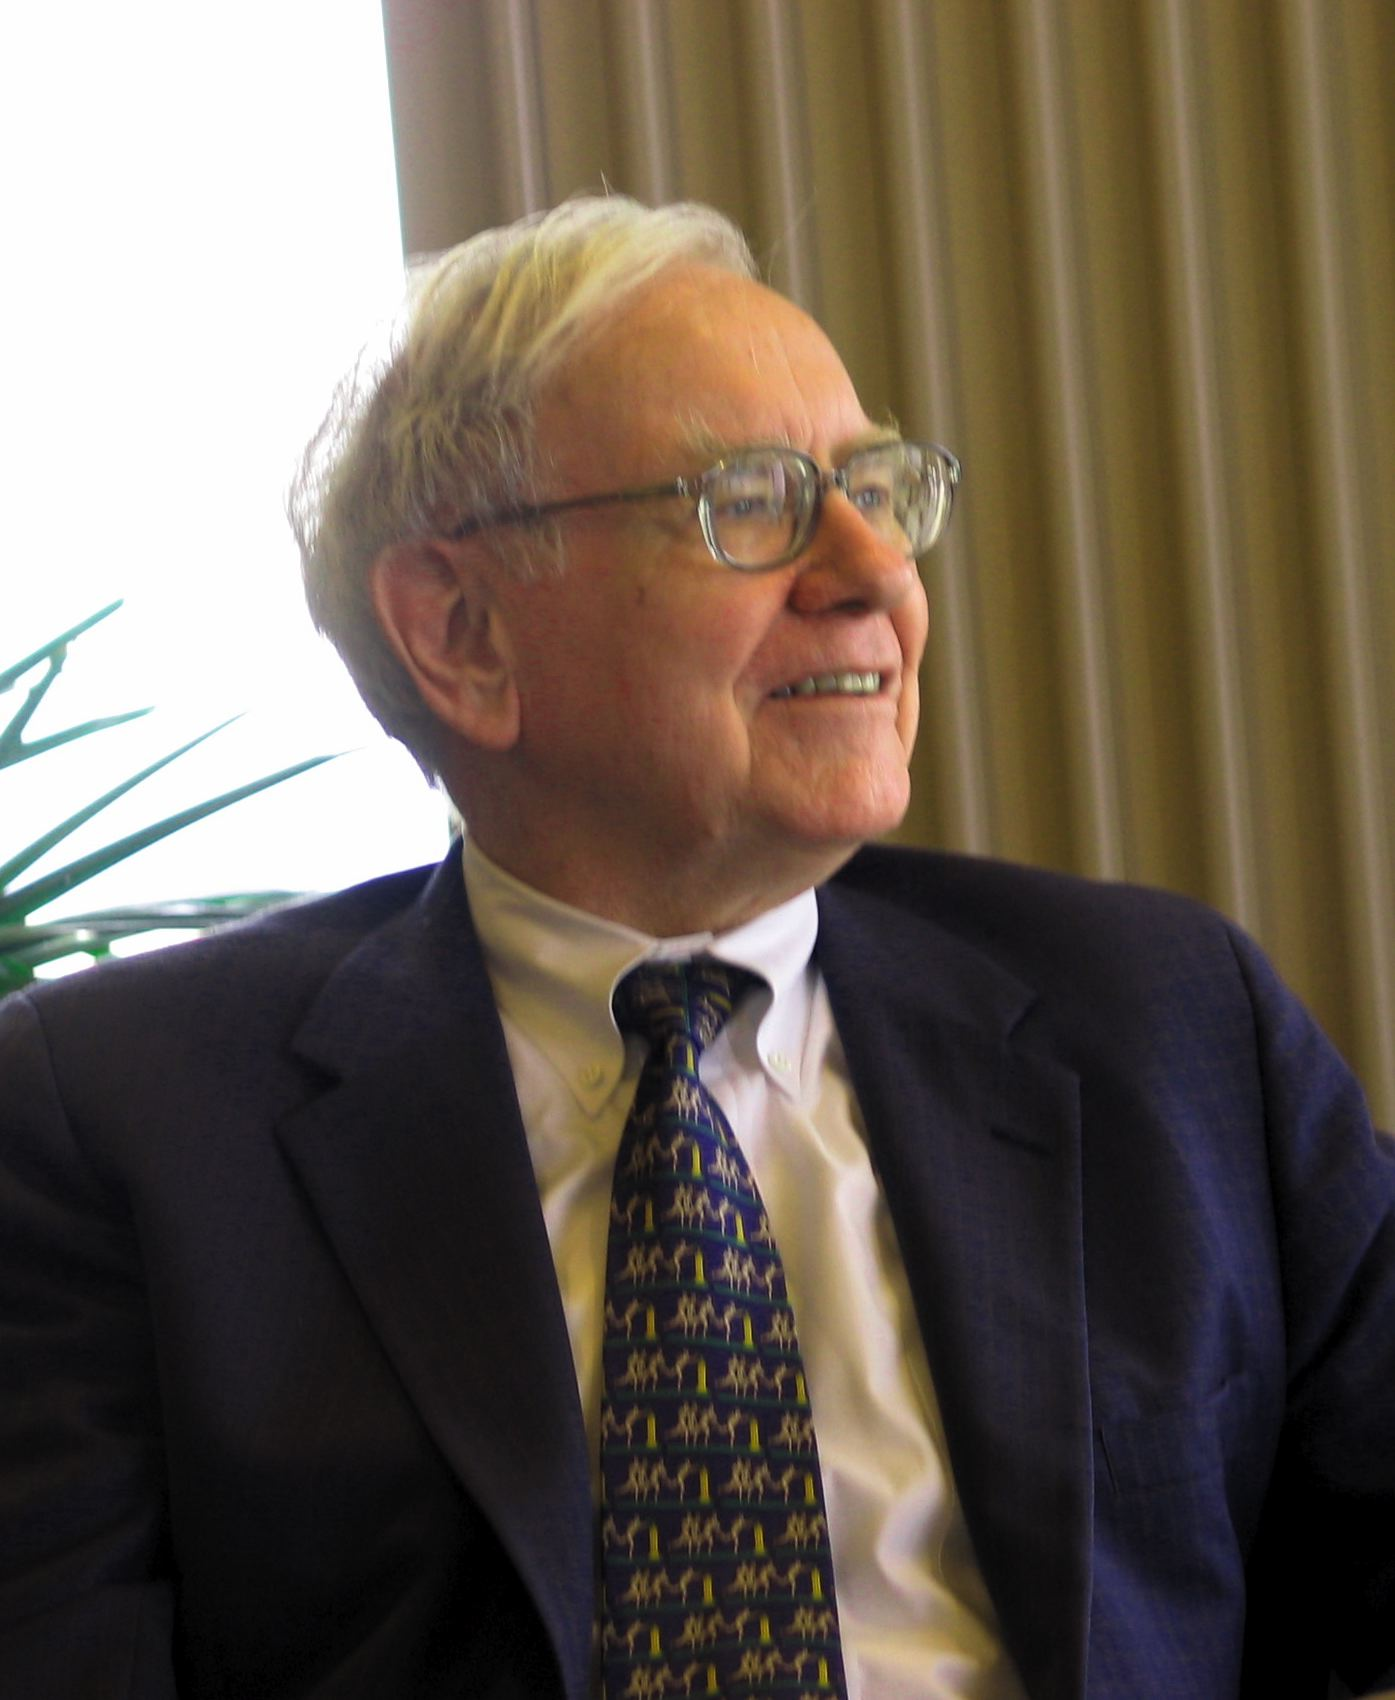 Warren Buffett's Original Money Management Fee Structure